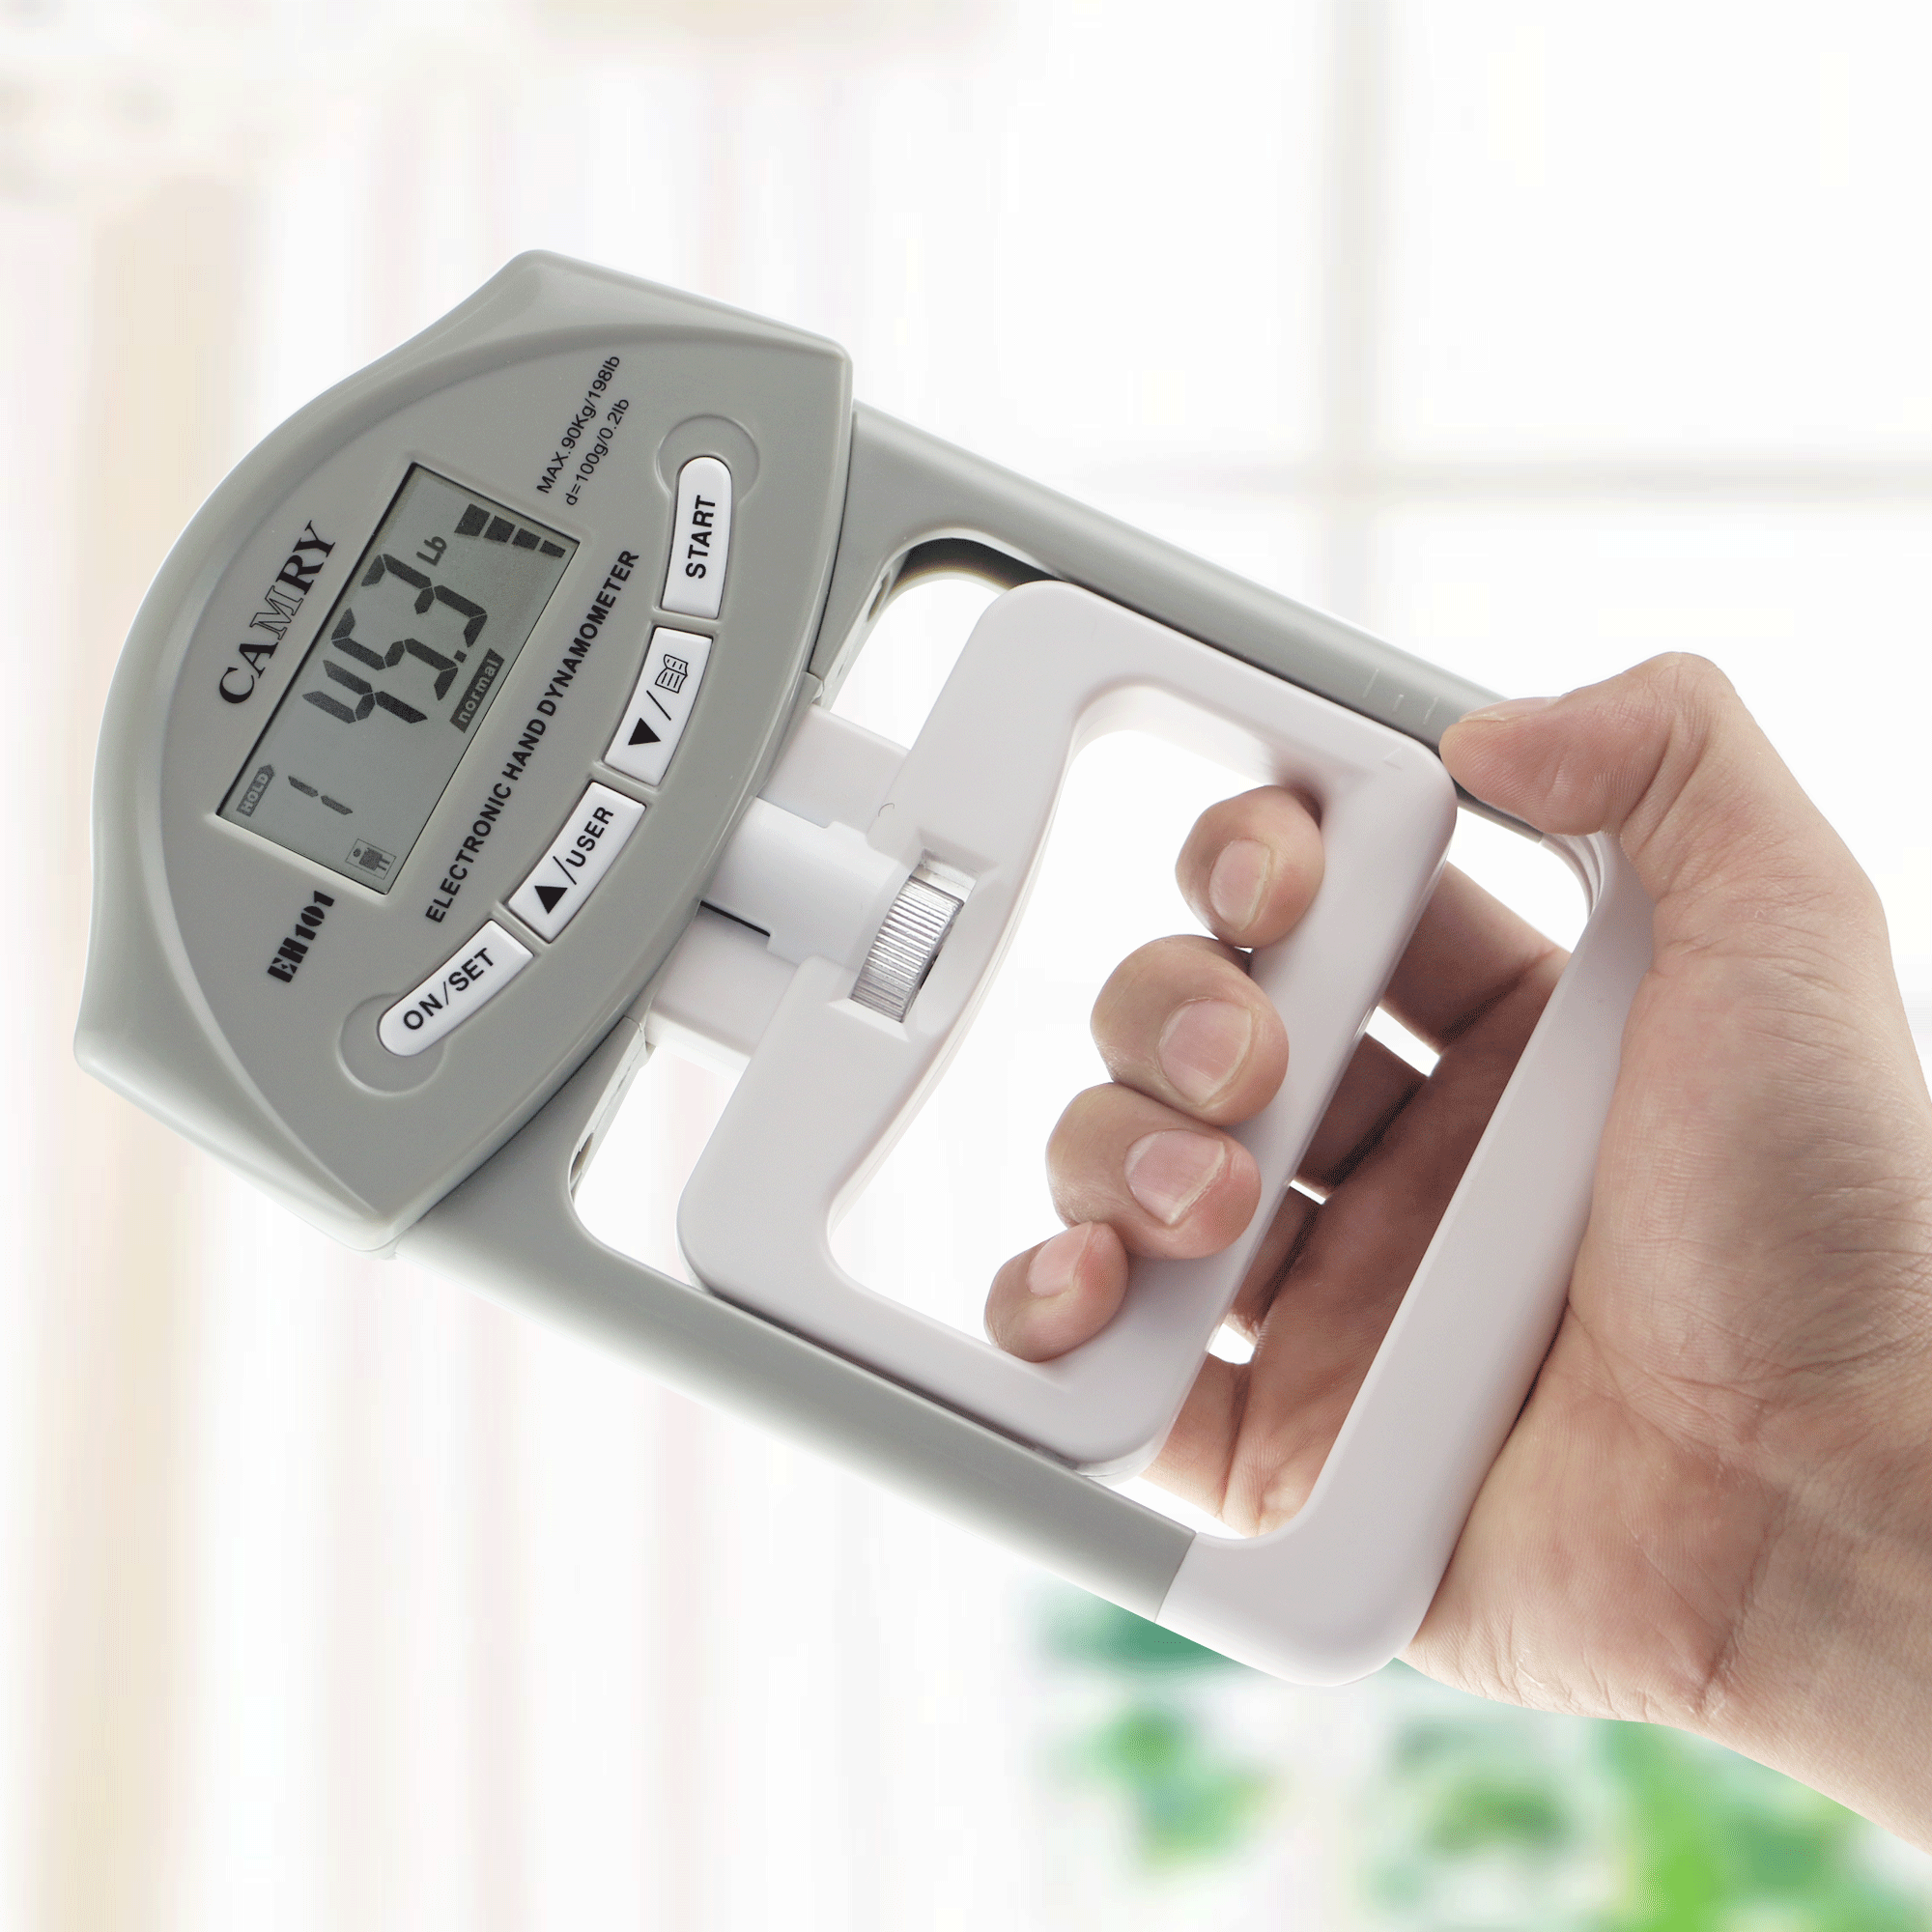 camry eh101 digital hand dynamometer grey hand. Black Bedroom Furniture Sets. Home Design Ideas